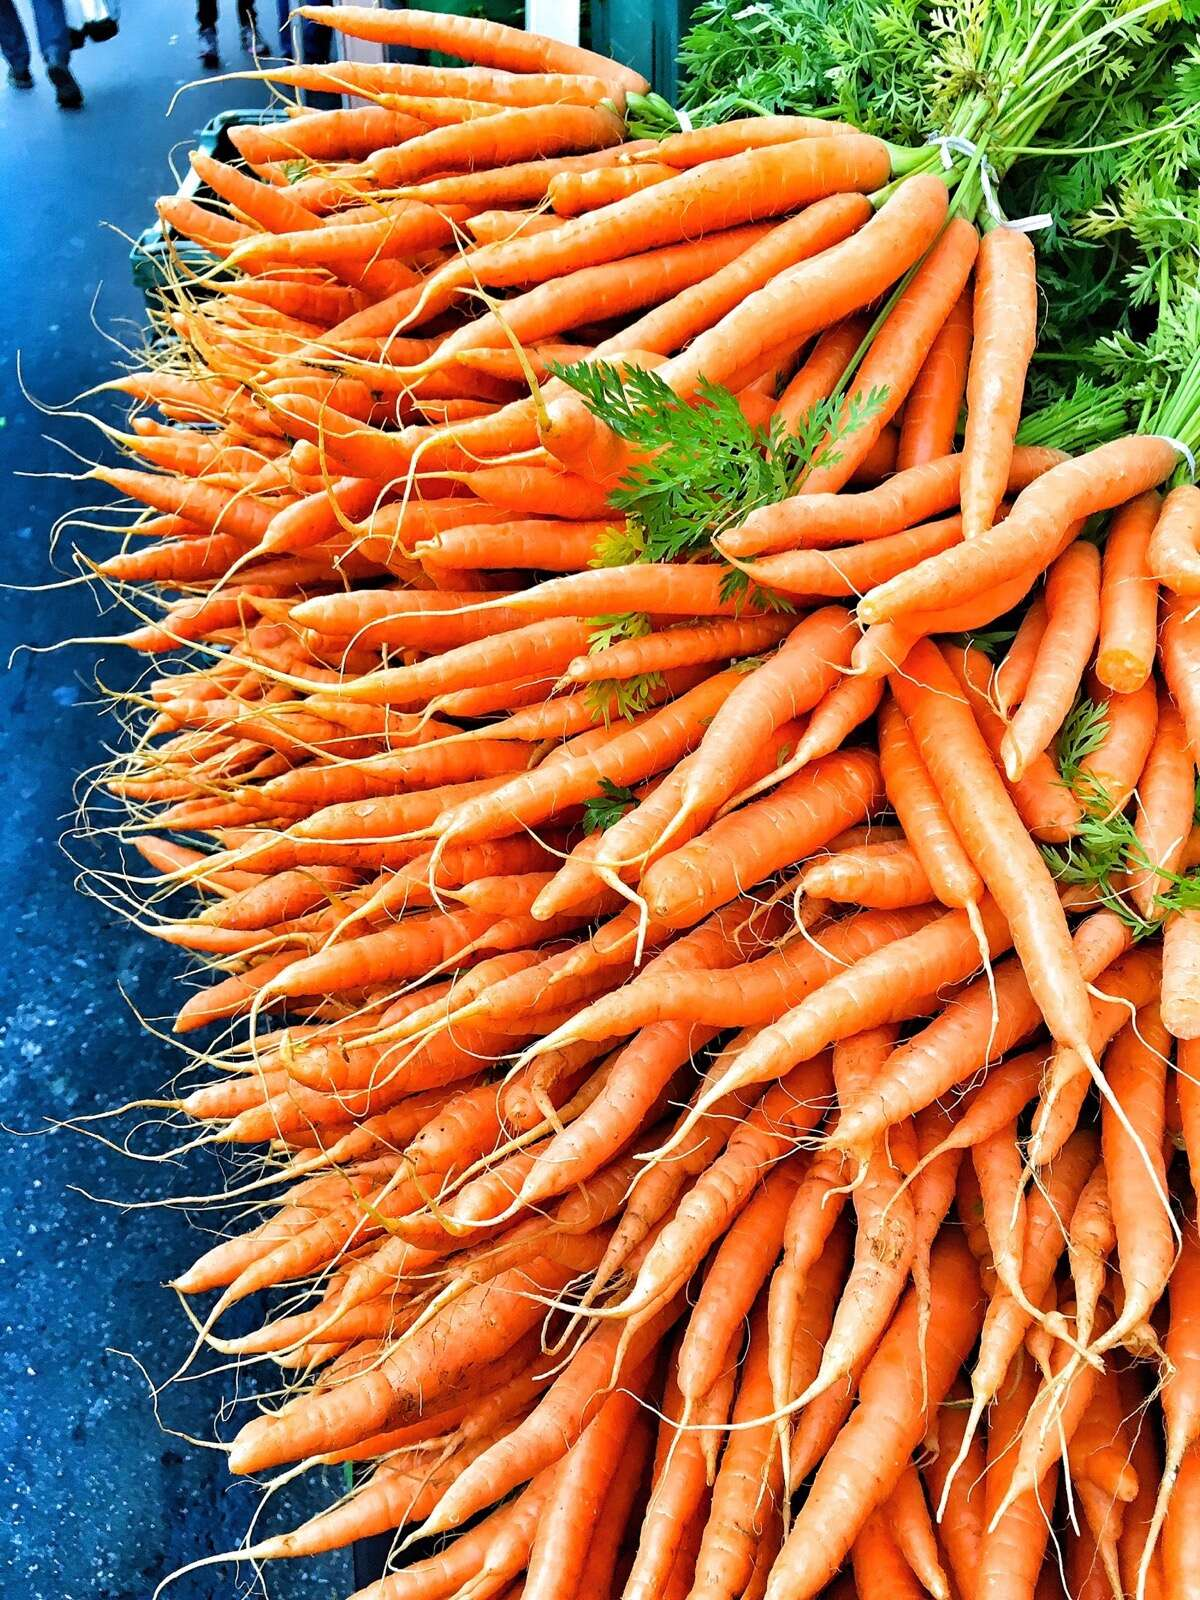 Bunches of thin carrots stacked on a stand at a farmers' market.